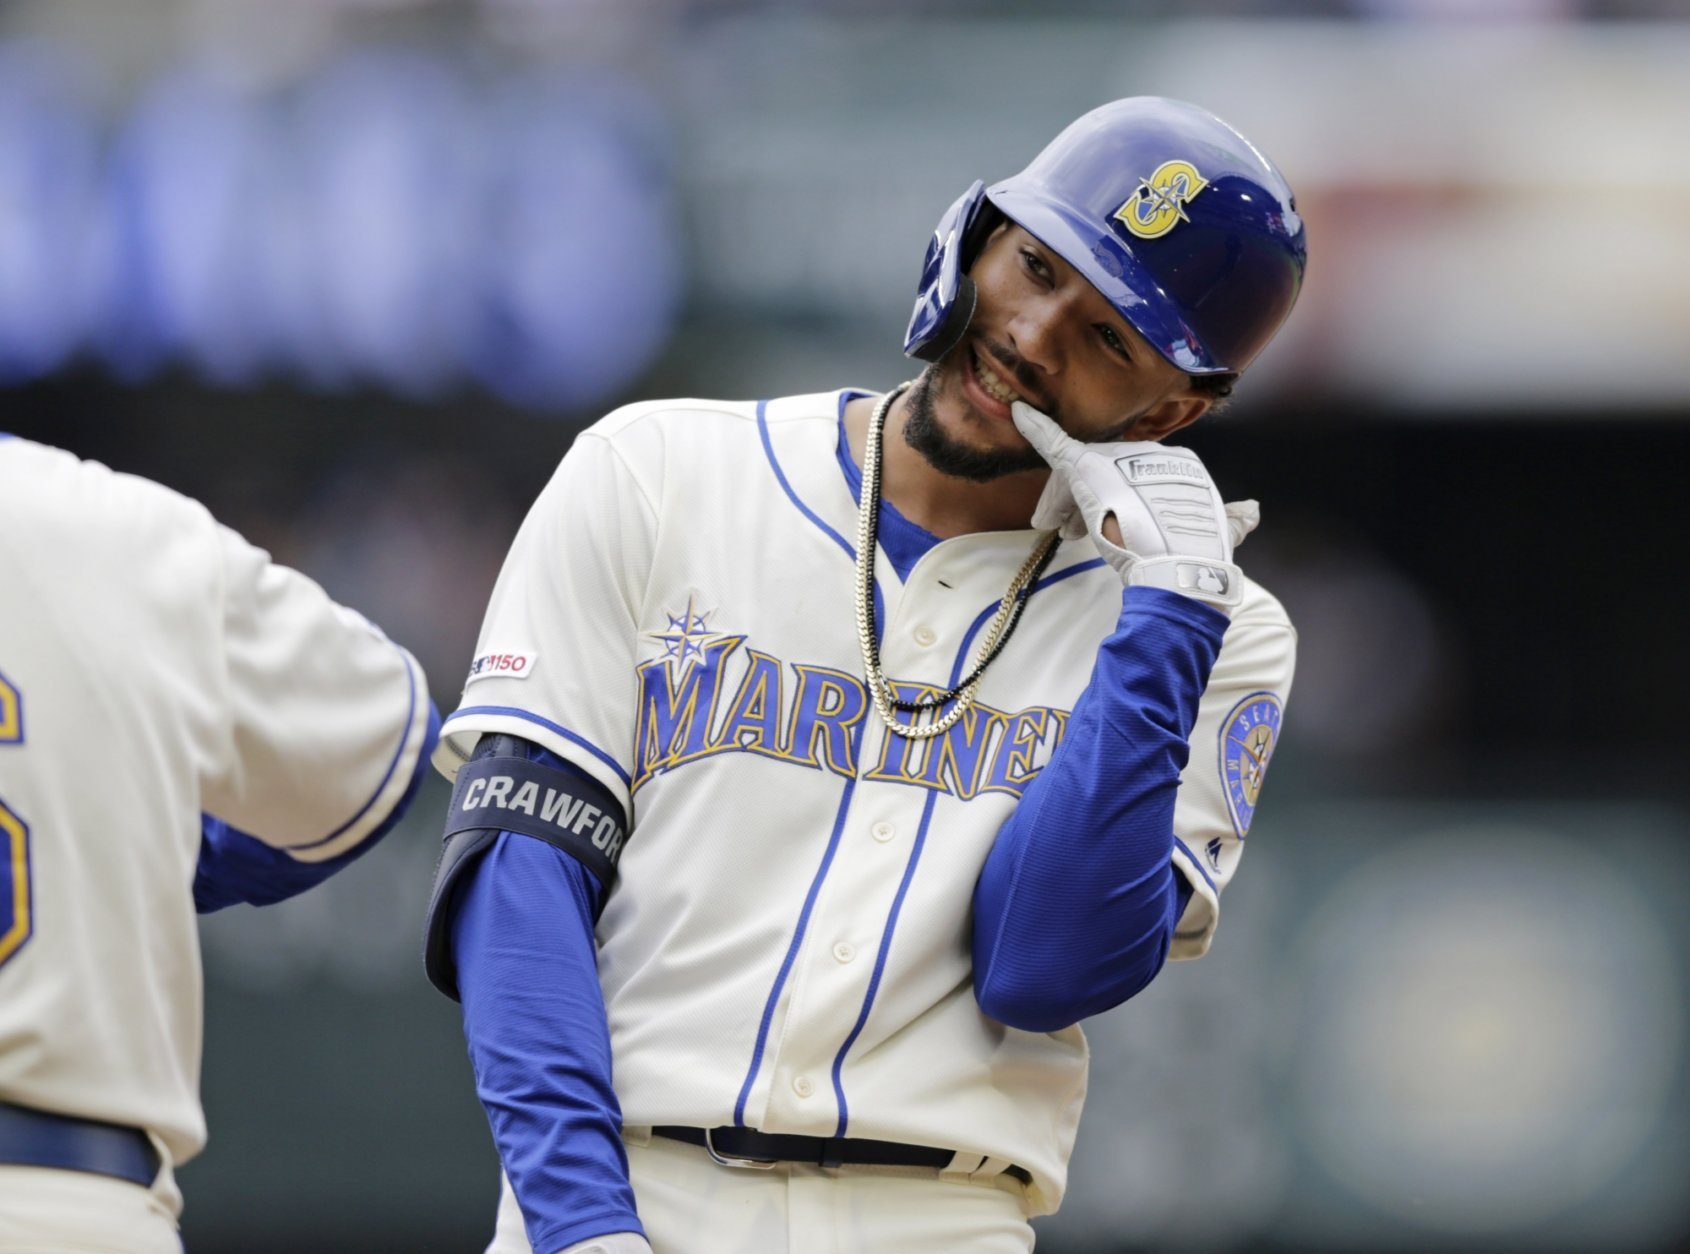 Seattle Mariners' J.P. Crawford reacts on first after hitting a two-run single against the Baltimore Orioles during the third inning of a baseball game, Sunday, June 23, 2019, in Seattle. (AP Photo/John Froschauer)